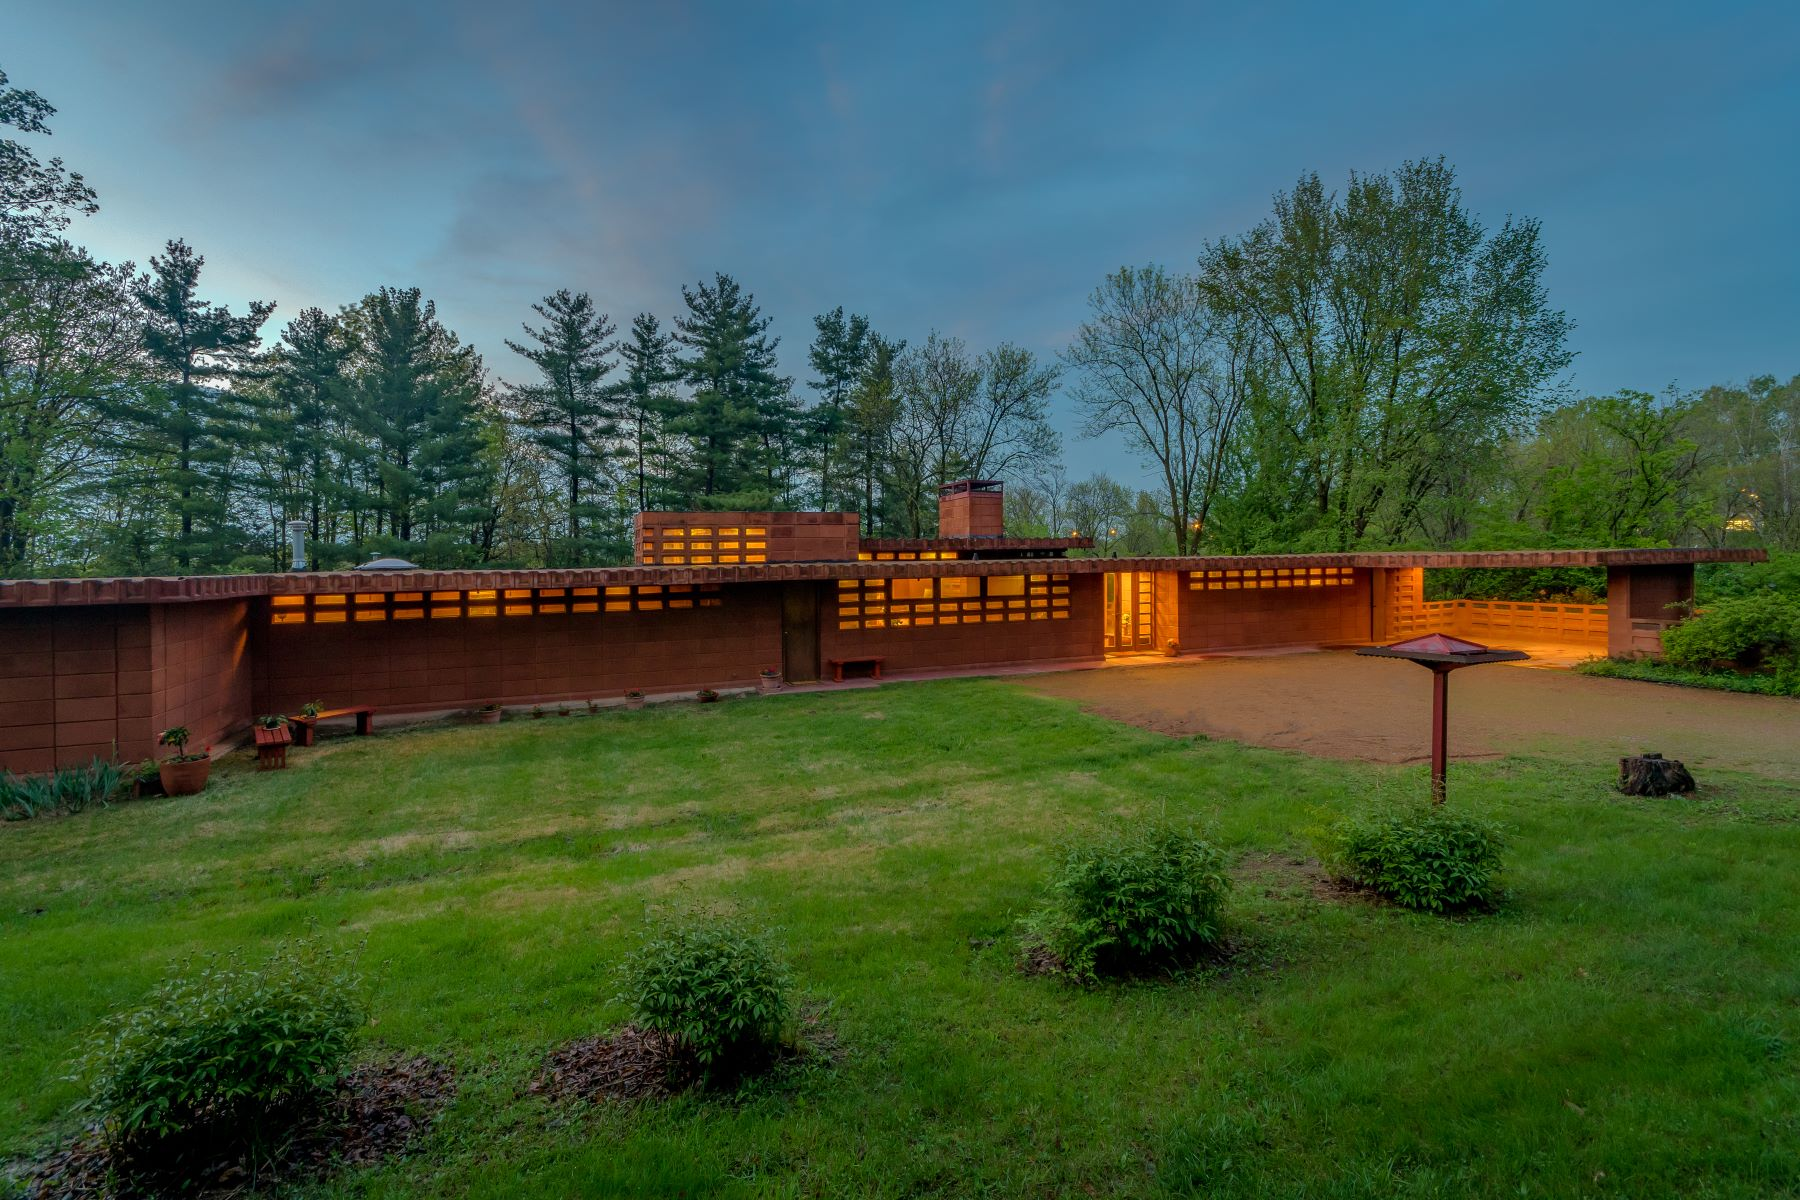 Single Family Homes for Sale at Frank Lloyd Wright residence 865 Masonridge Road Town And Country, Missouri 63141 United States